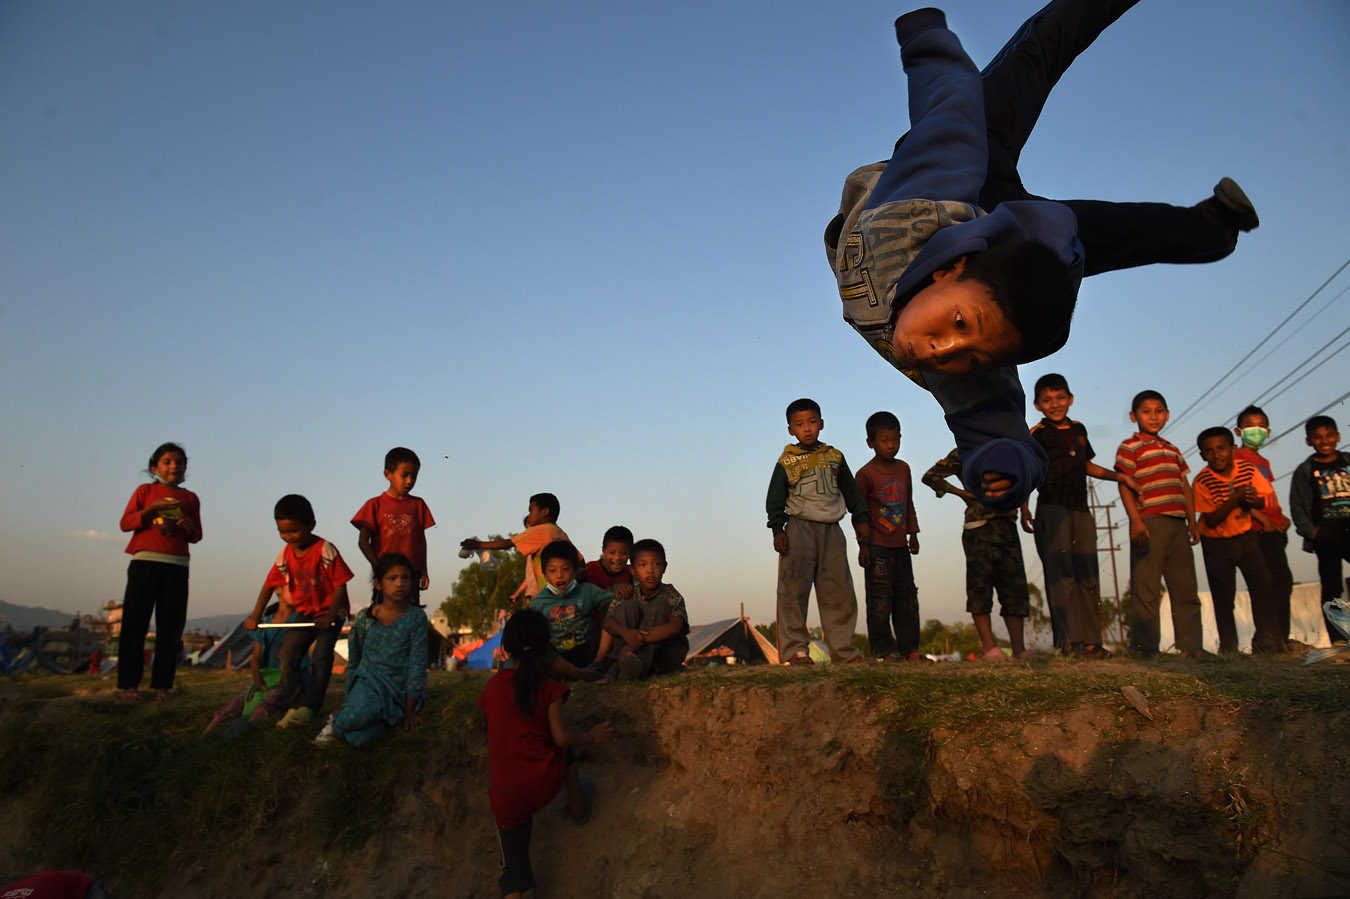 A young boy does a flip into a pit that was being used for garbage at a tent encampment for people displaced by the earthquake on Tuesday May 05, 2015 in Kathmandu, Nepal. A deadly earthquake has killed thousands in Nepal. (Photo by Matt McClain/ The Washington Post)